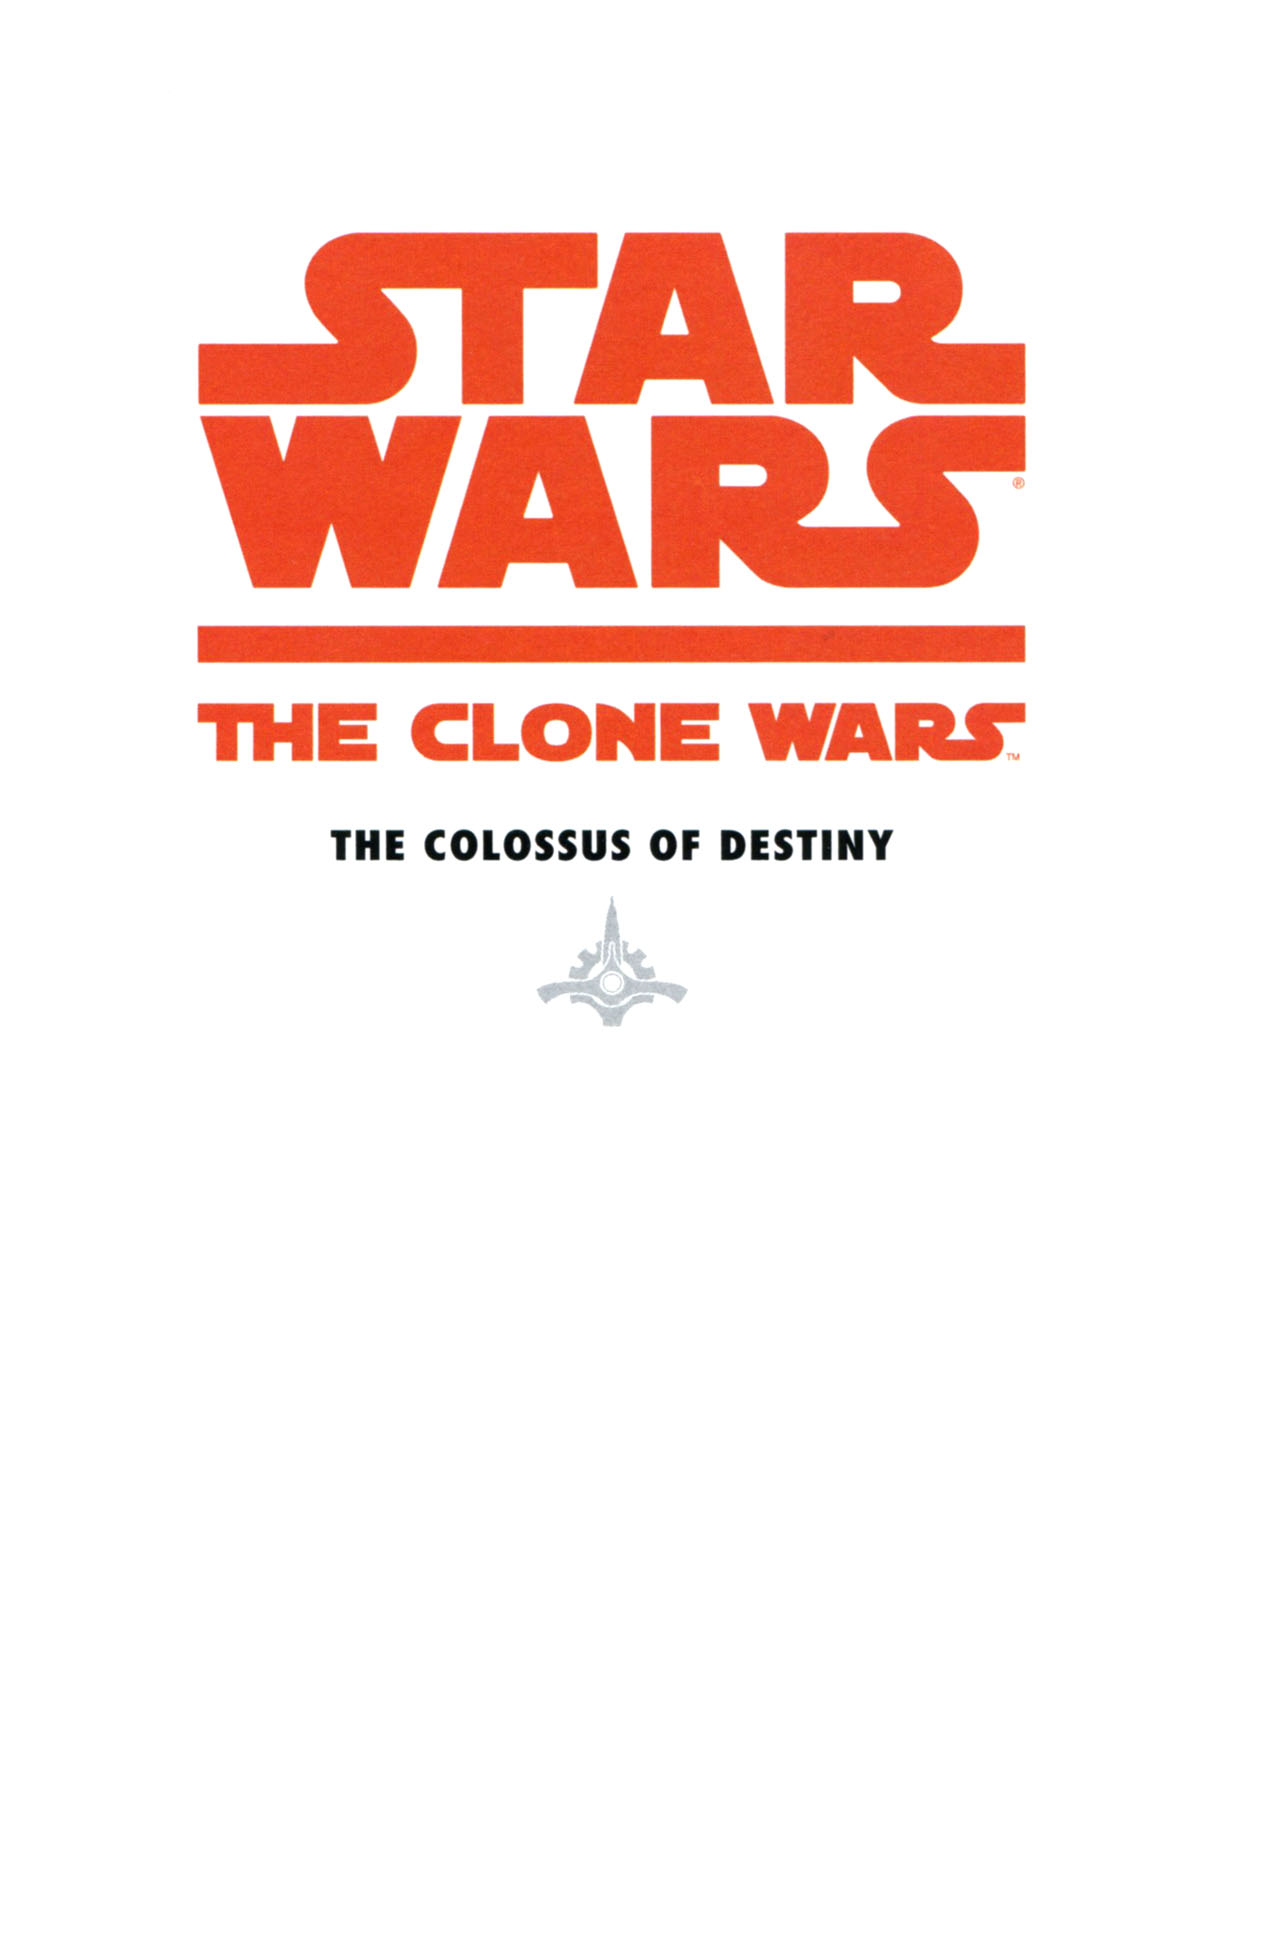 Read online Star Wars: The Clone Wars - The Colossus of Destiny comic -  Issue # Full - 3